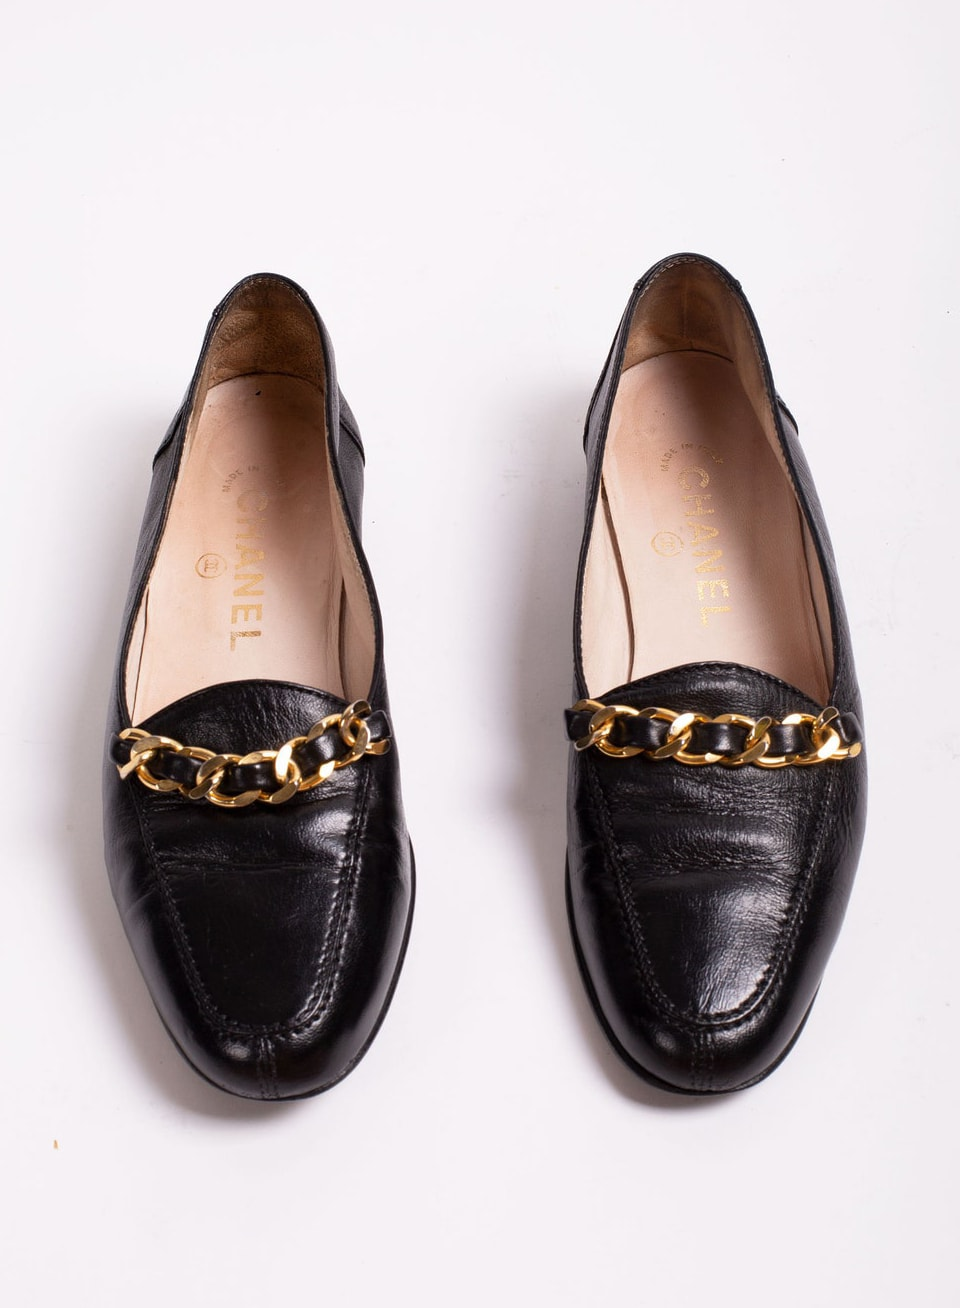 Rare Vintage Chanel Black Lambskin Leather + Gold Chain Link Loafers size 37 7 80s 90s Minimal Classic CC